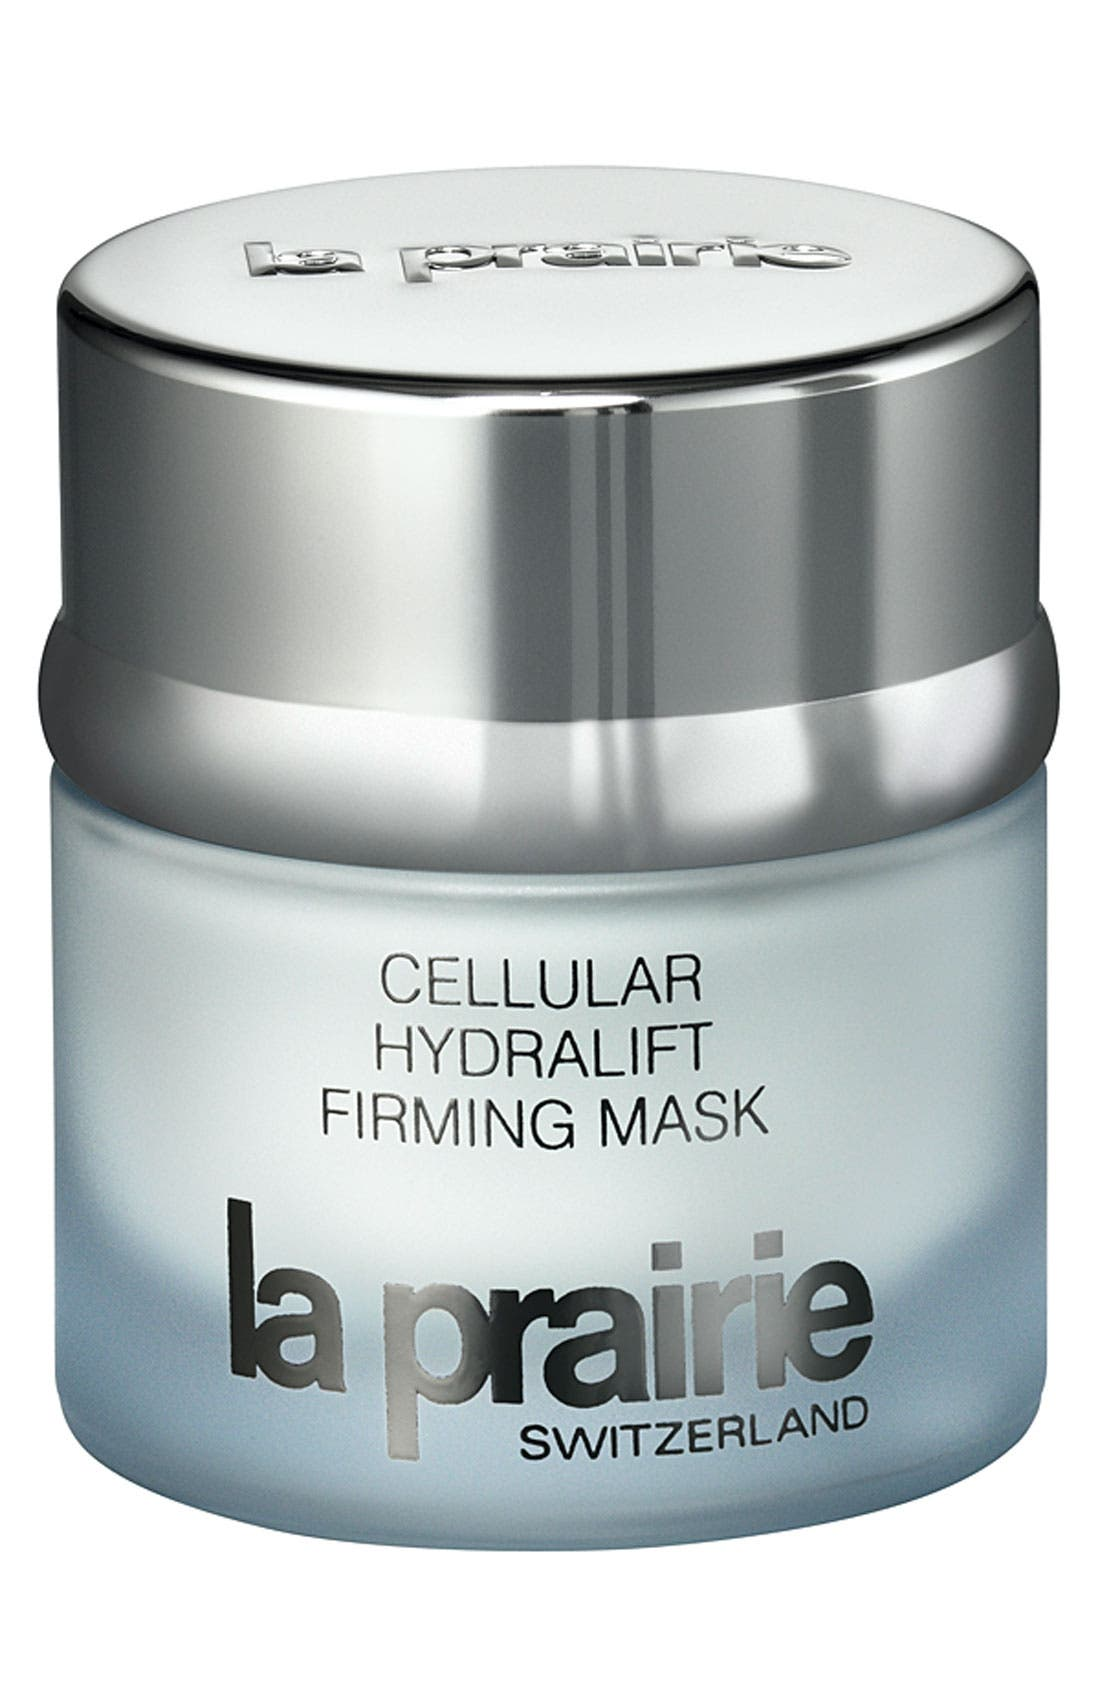 Cellular Hydralift Firming Mask,                             Main thumbnail 1, color,                             NO COLOR